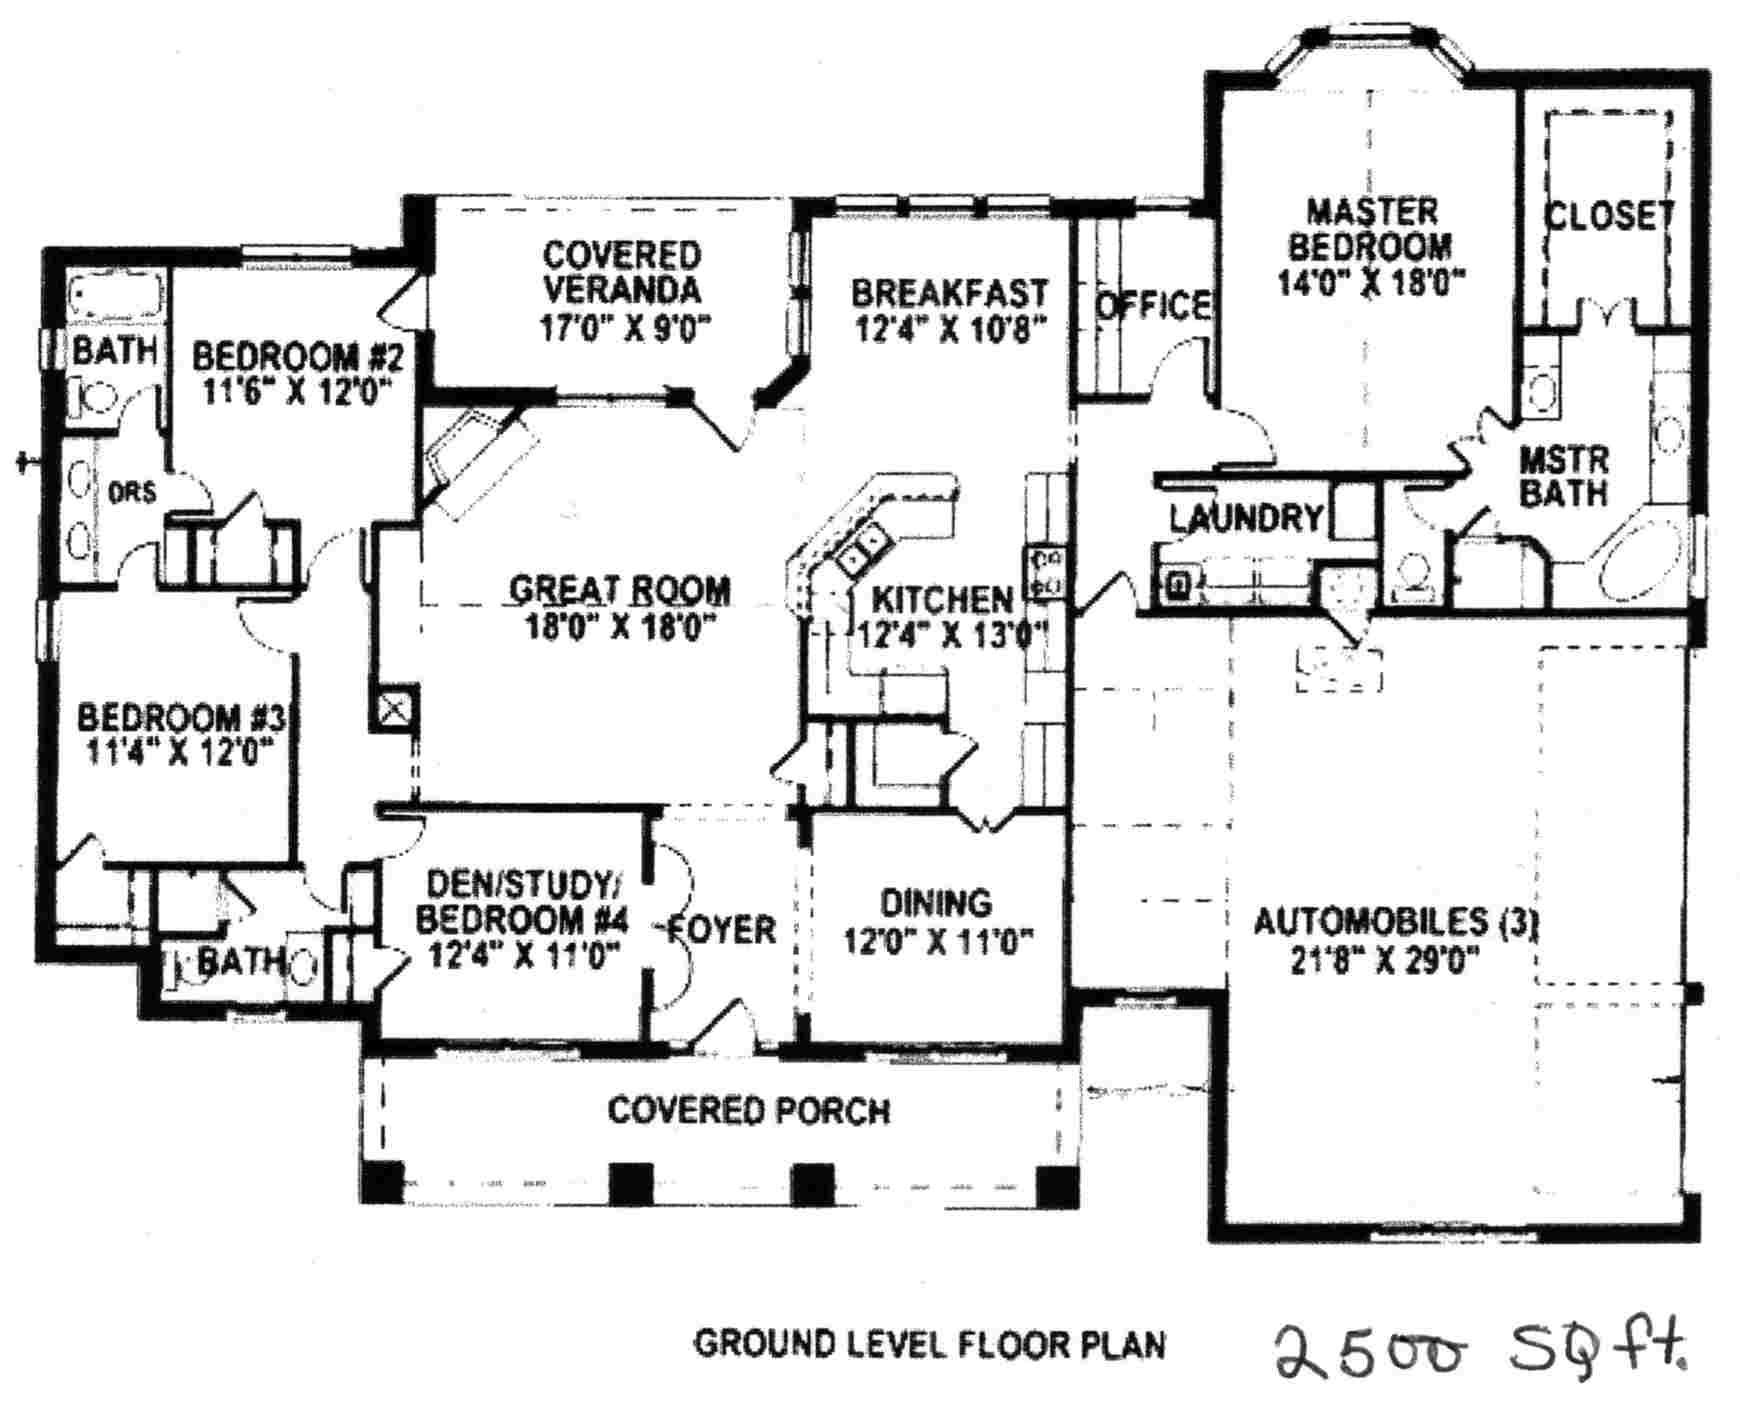 2500 sq ft house plans peltier builders inc about us for 2500 ft house plans